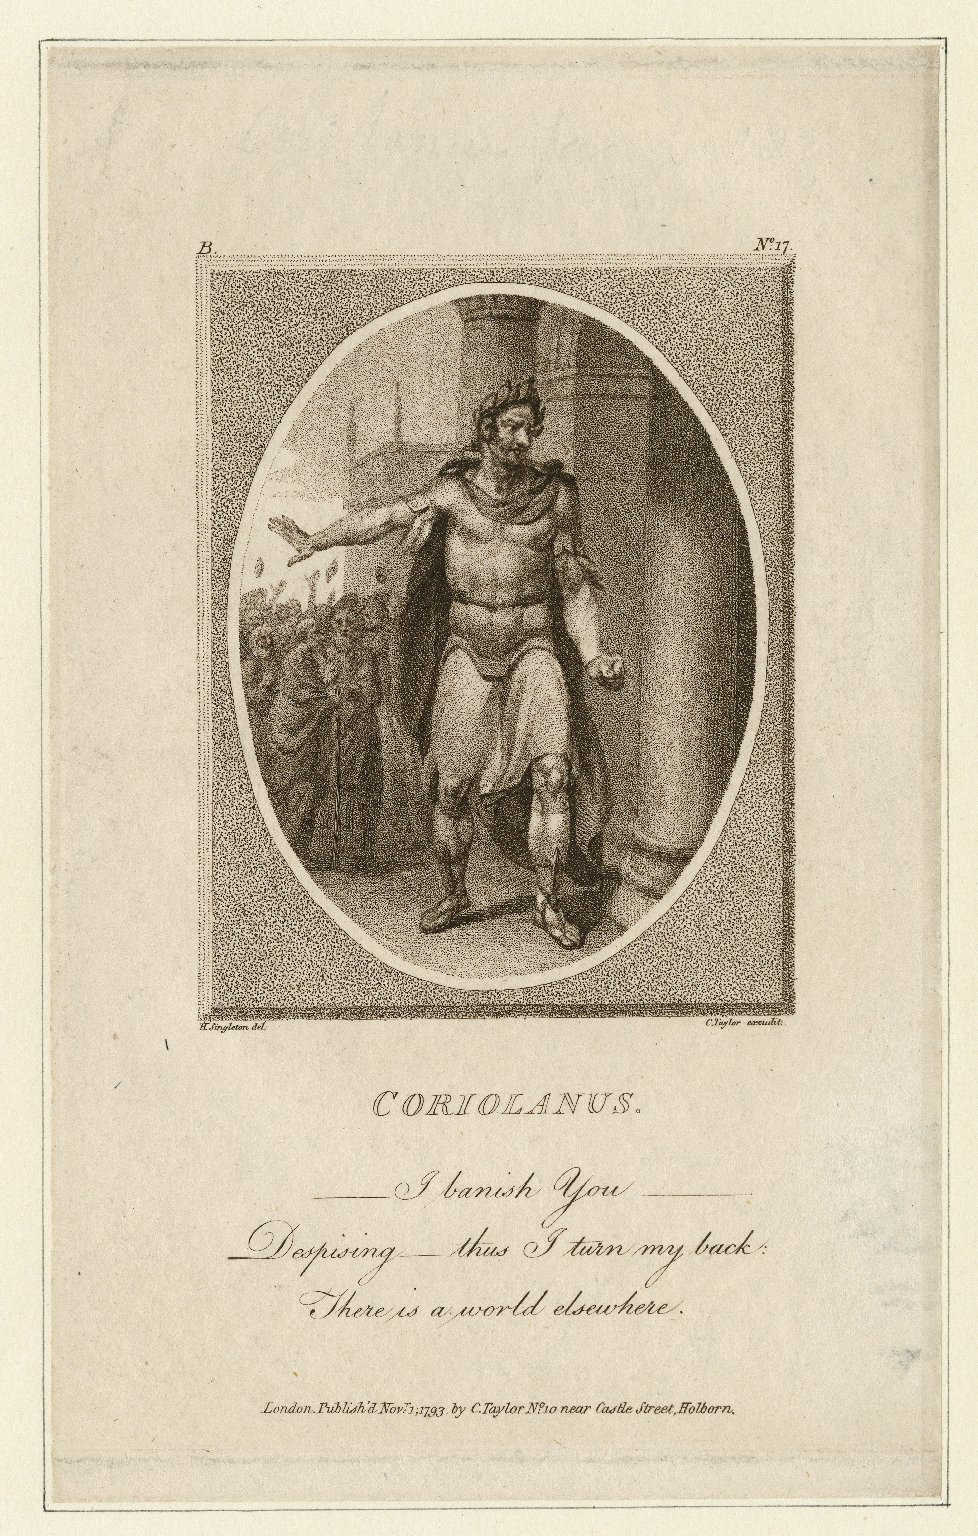 Coriolanus [character in play of that name] I banish you ... Despising ... thus I turn my back: There is a world elsewhere [graphic] / H. Singleton, del. ; C. Taylor, excudit.